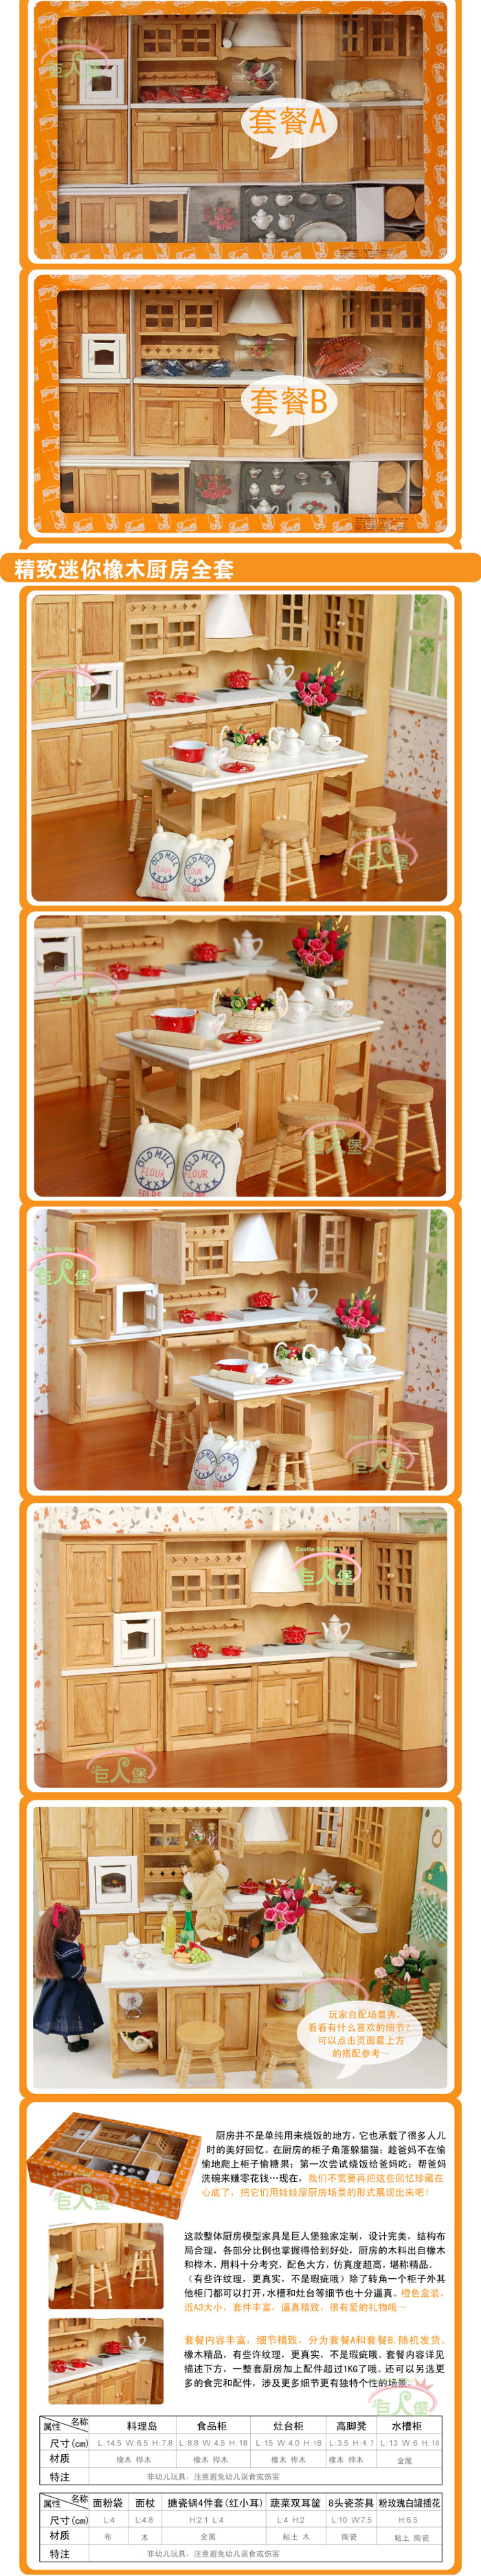 Ball-jointed Doll (Bjd)'s dreamhouse interior kitchen set for dolls